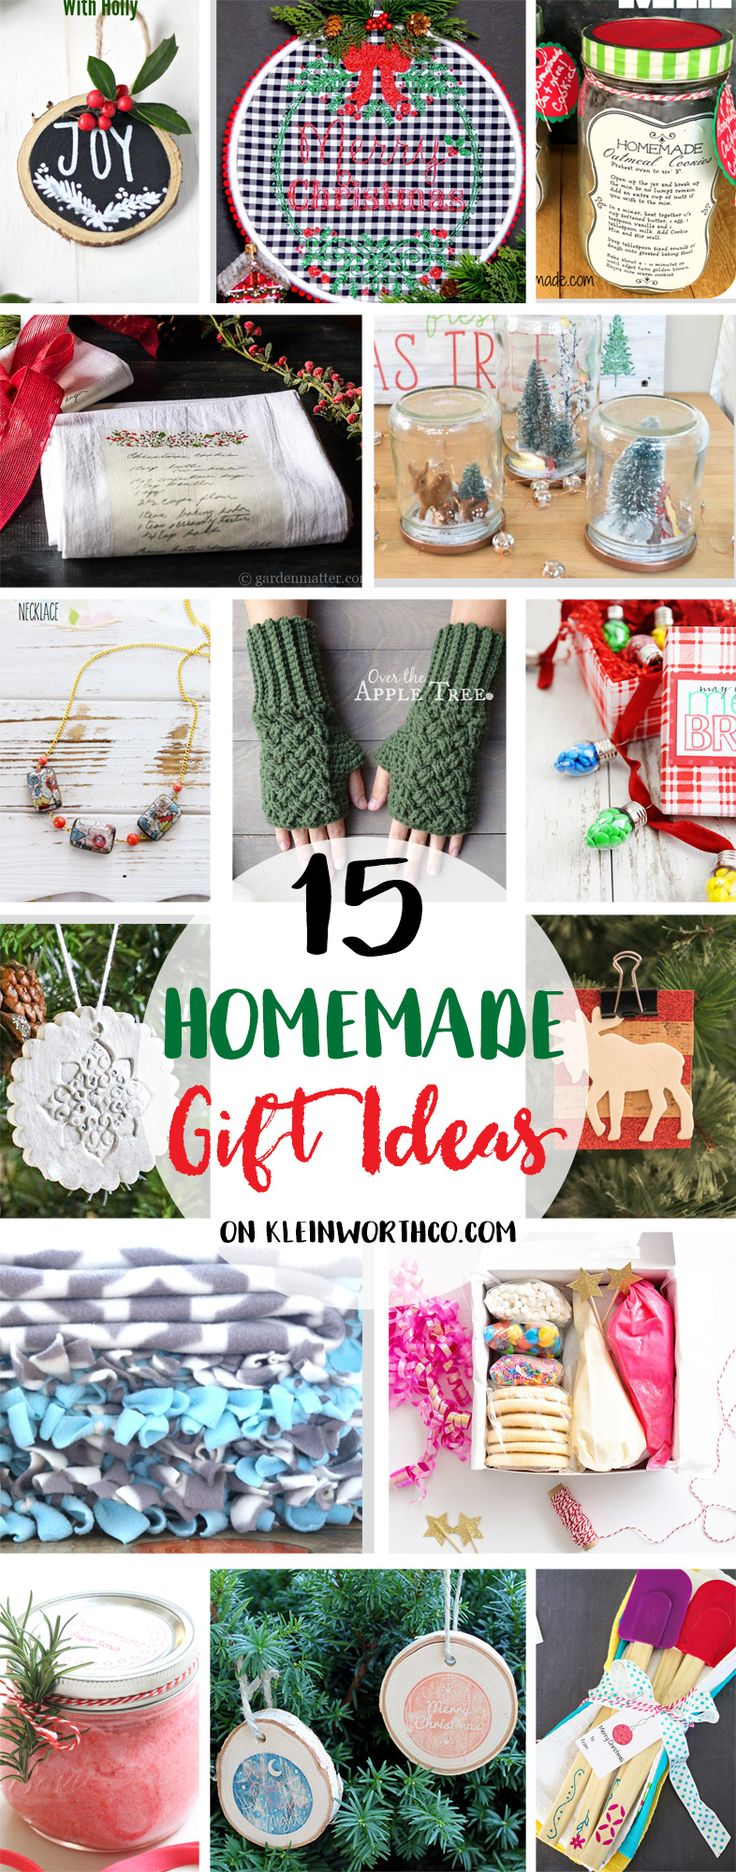 777 best gift ideas handmade images on pinterest christmas 15 homemade gift ideas make gift giving easy using items you probably have on hand negle Images